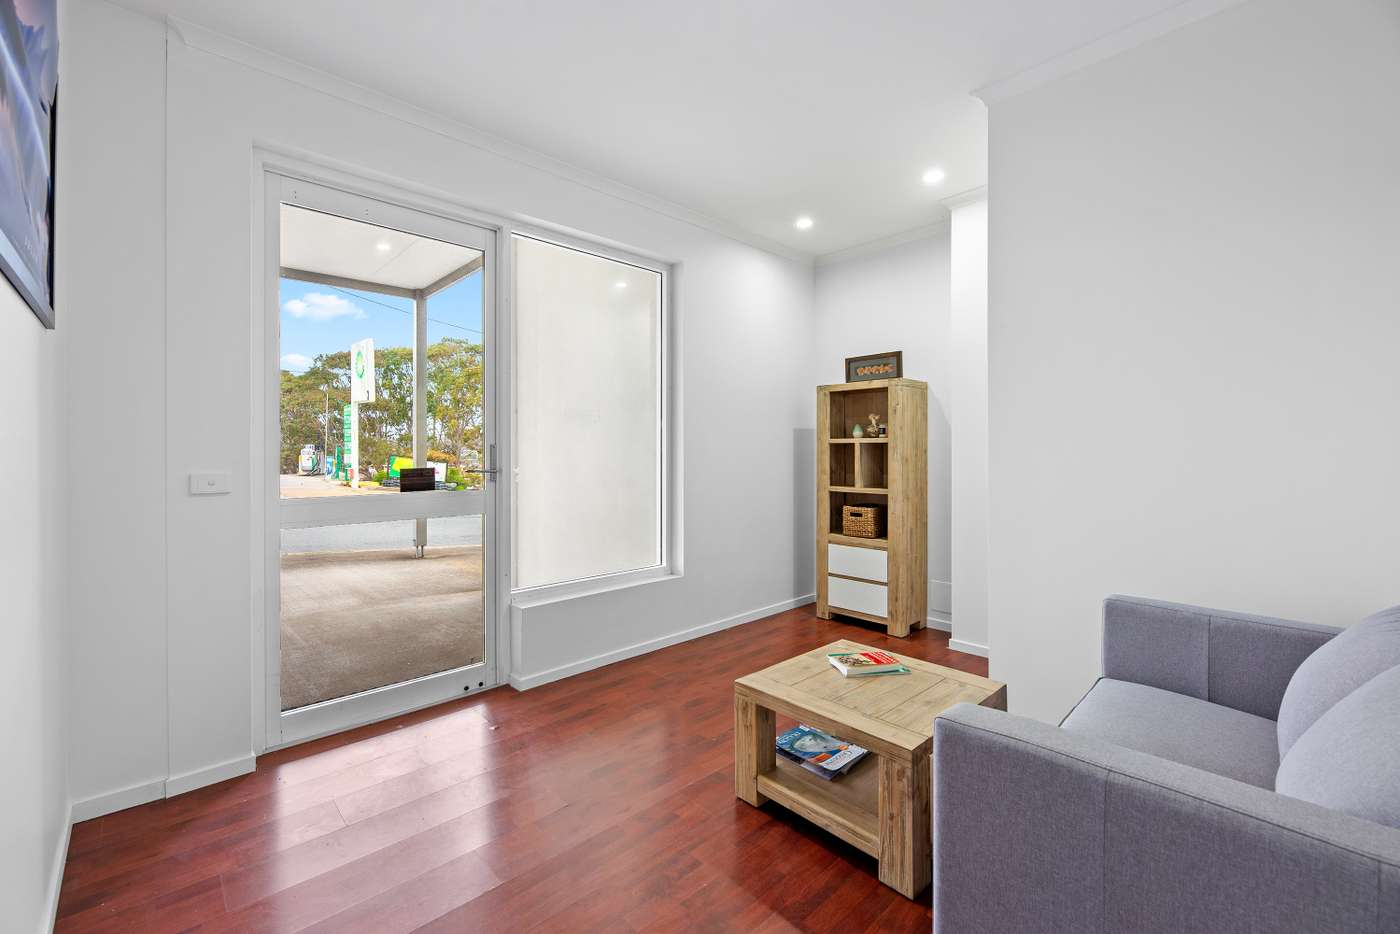 Sixth view of Homely studio listing, 22/89-93 CAMPBELL STREET, Narooma NSW 2546